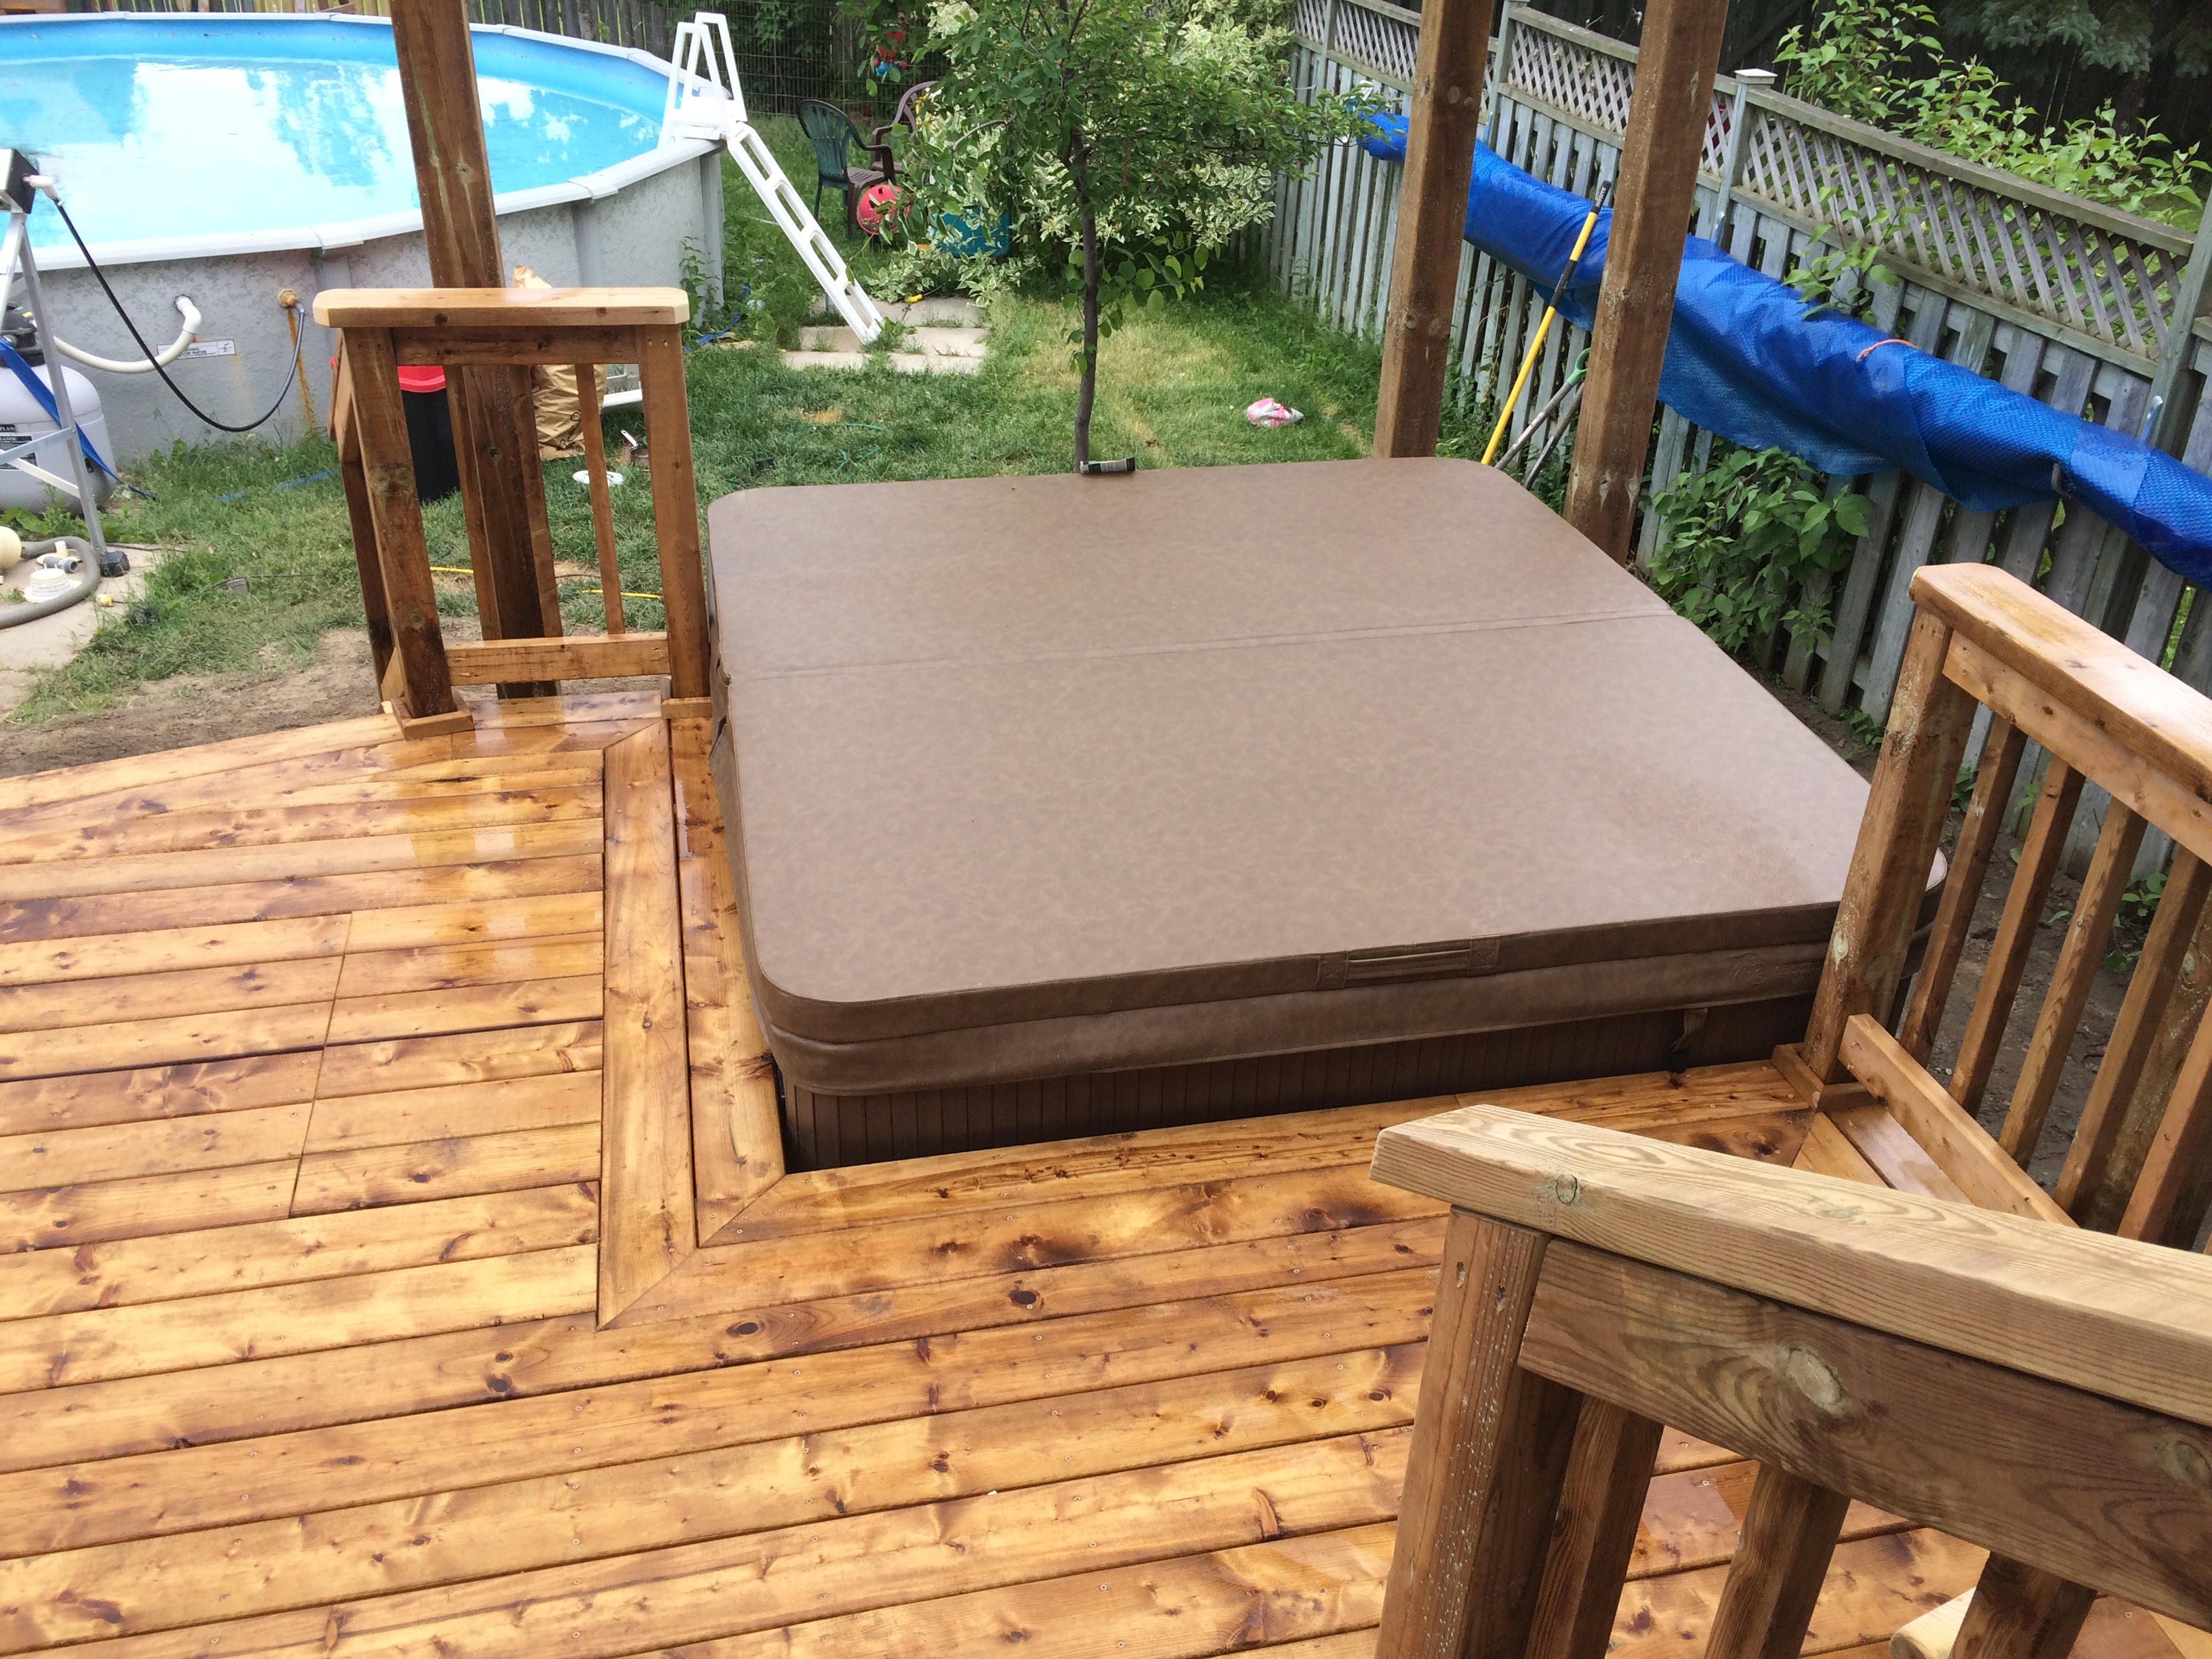 Keswick Deck - After Construction View From Deck Looking Towards Rear and Hot Tub